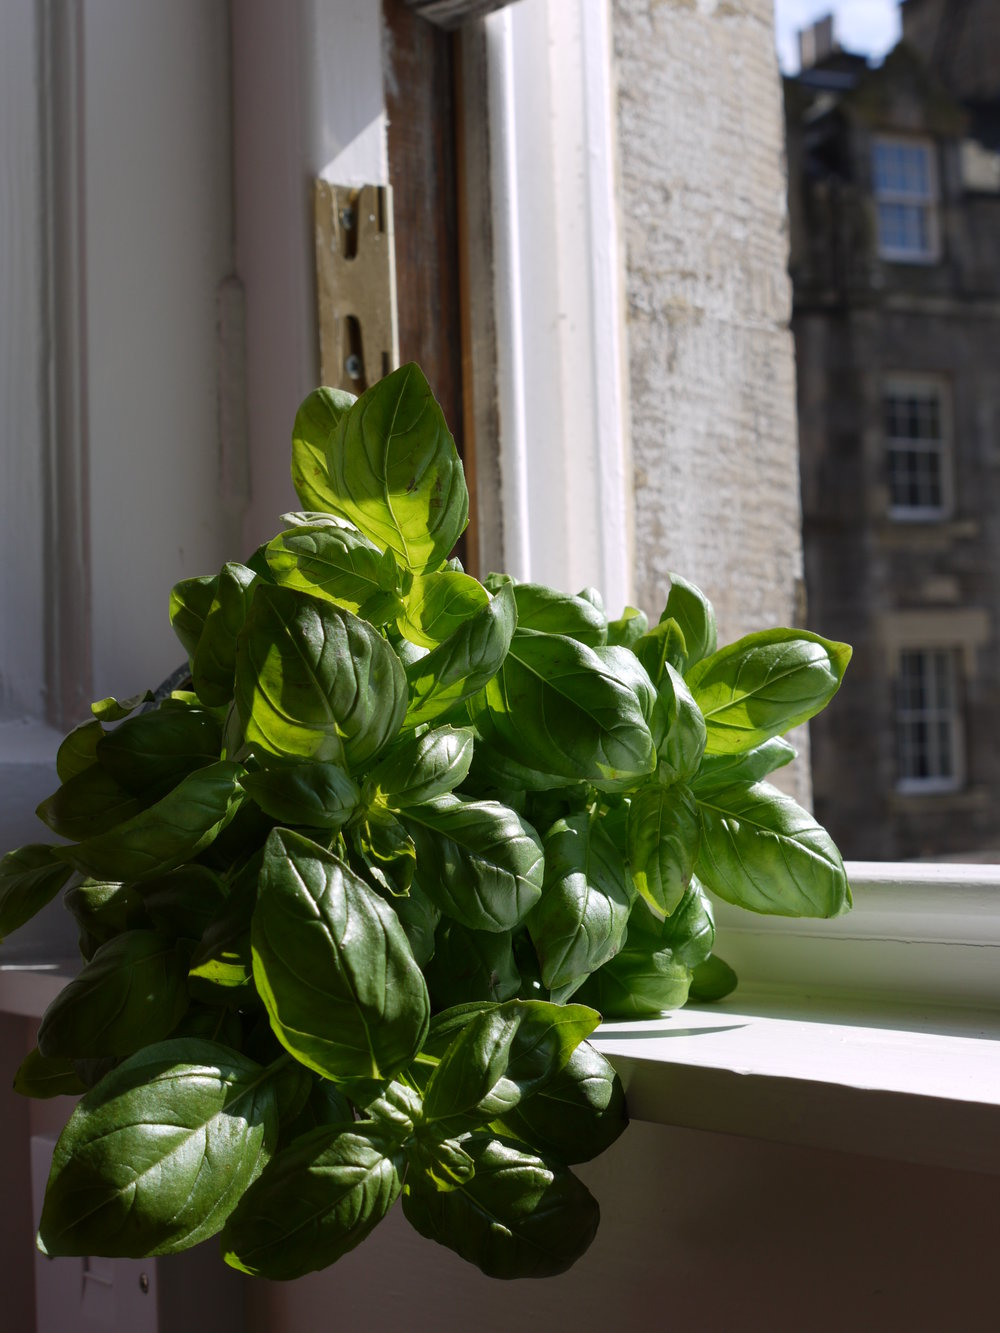 Basil in our Edinburgh window.